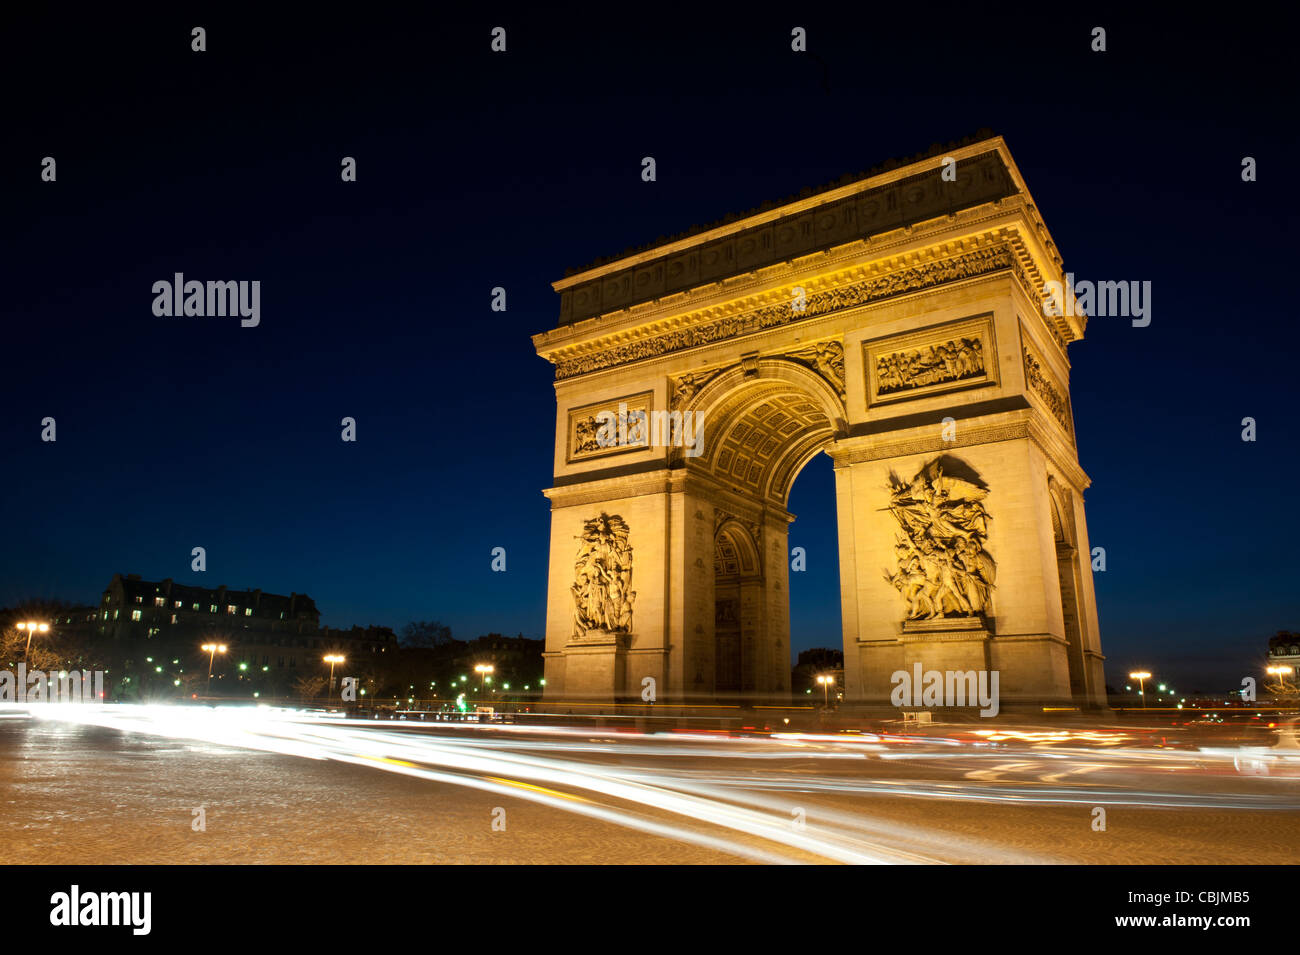 The Arc de Triomphe from the encompassing roundabout during evening, featuring light trails from traffic. - Stock Image